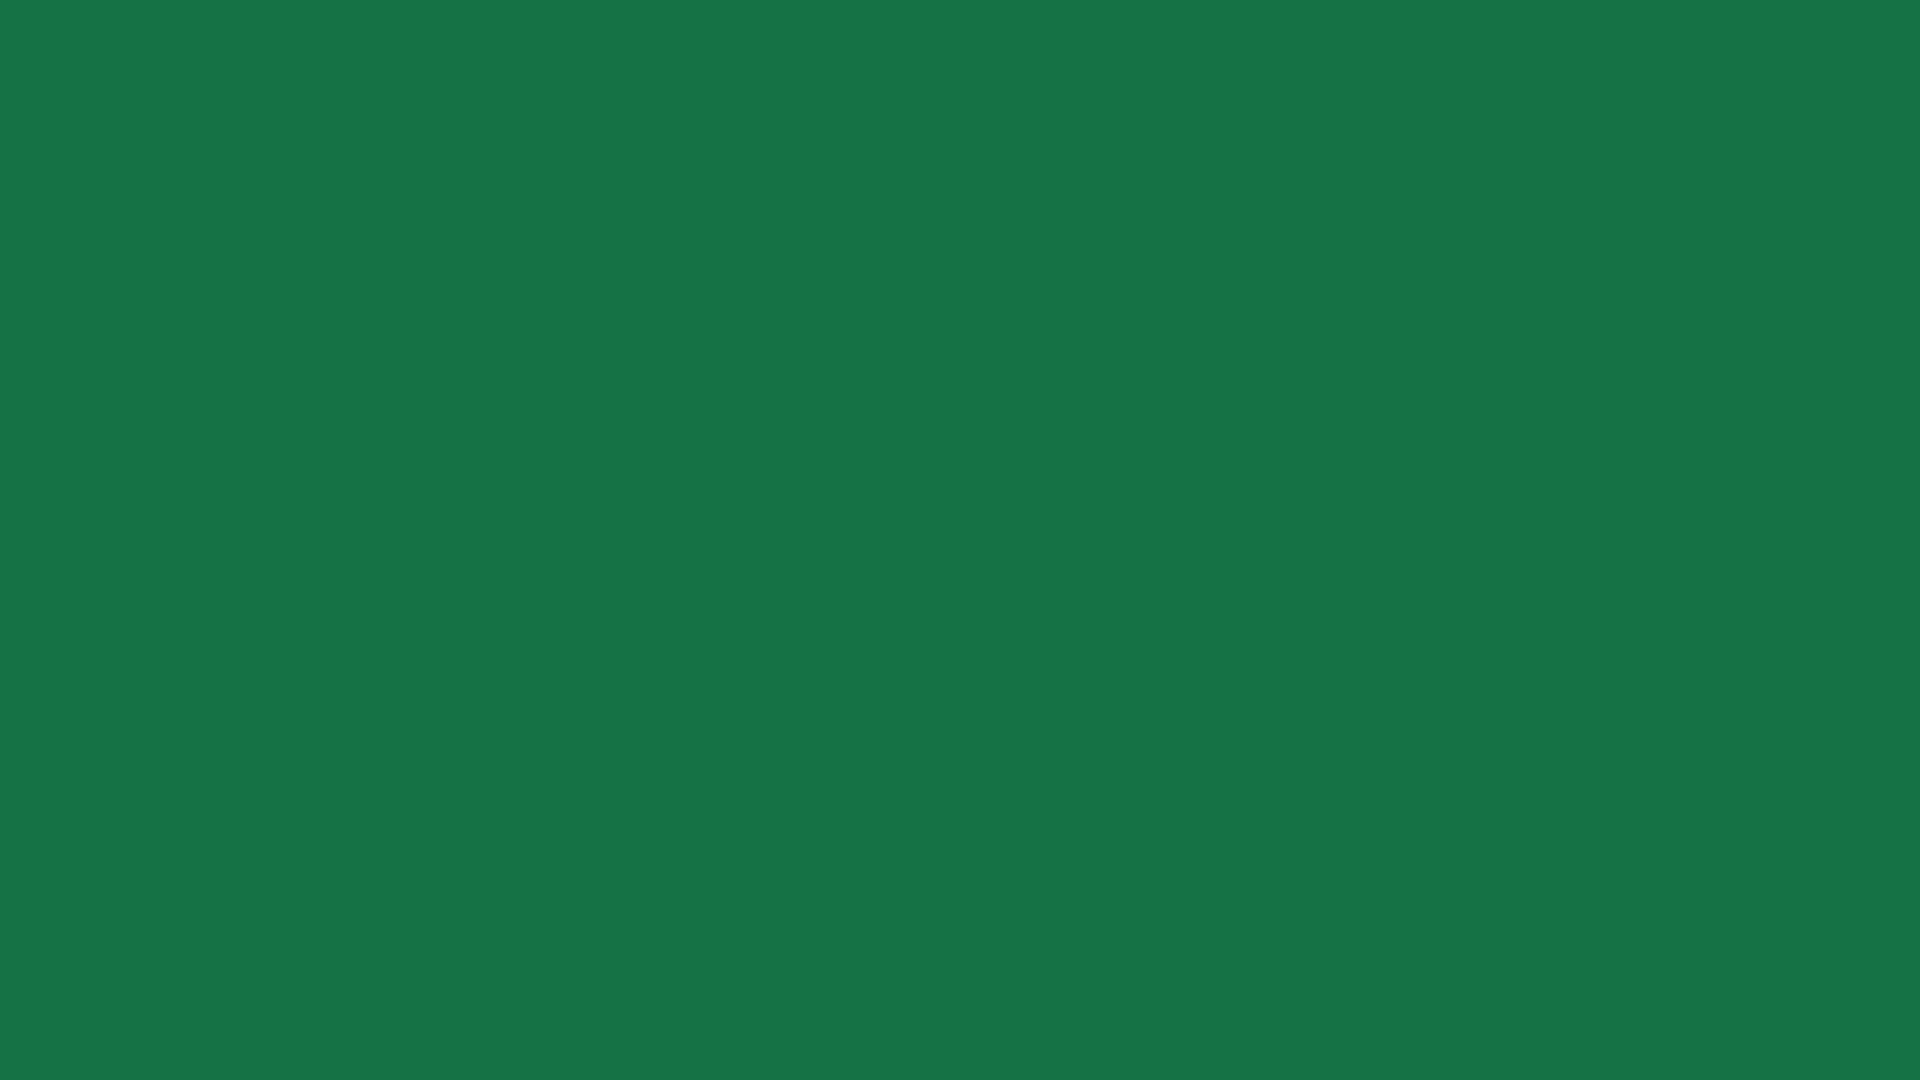 1920x1080 - Solid Green 21